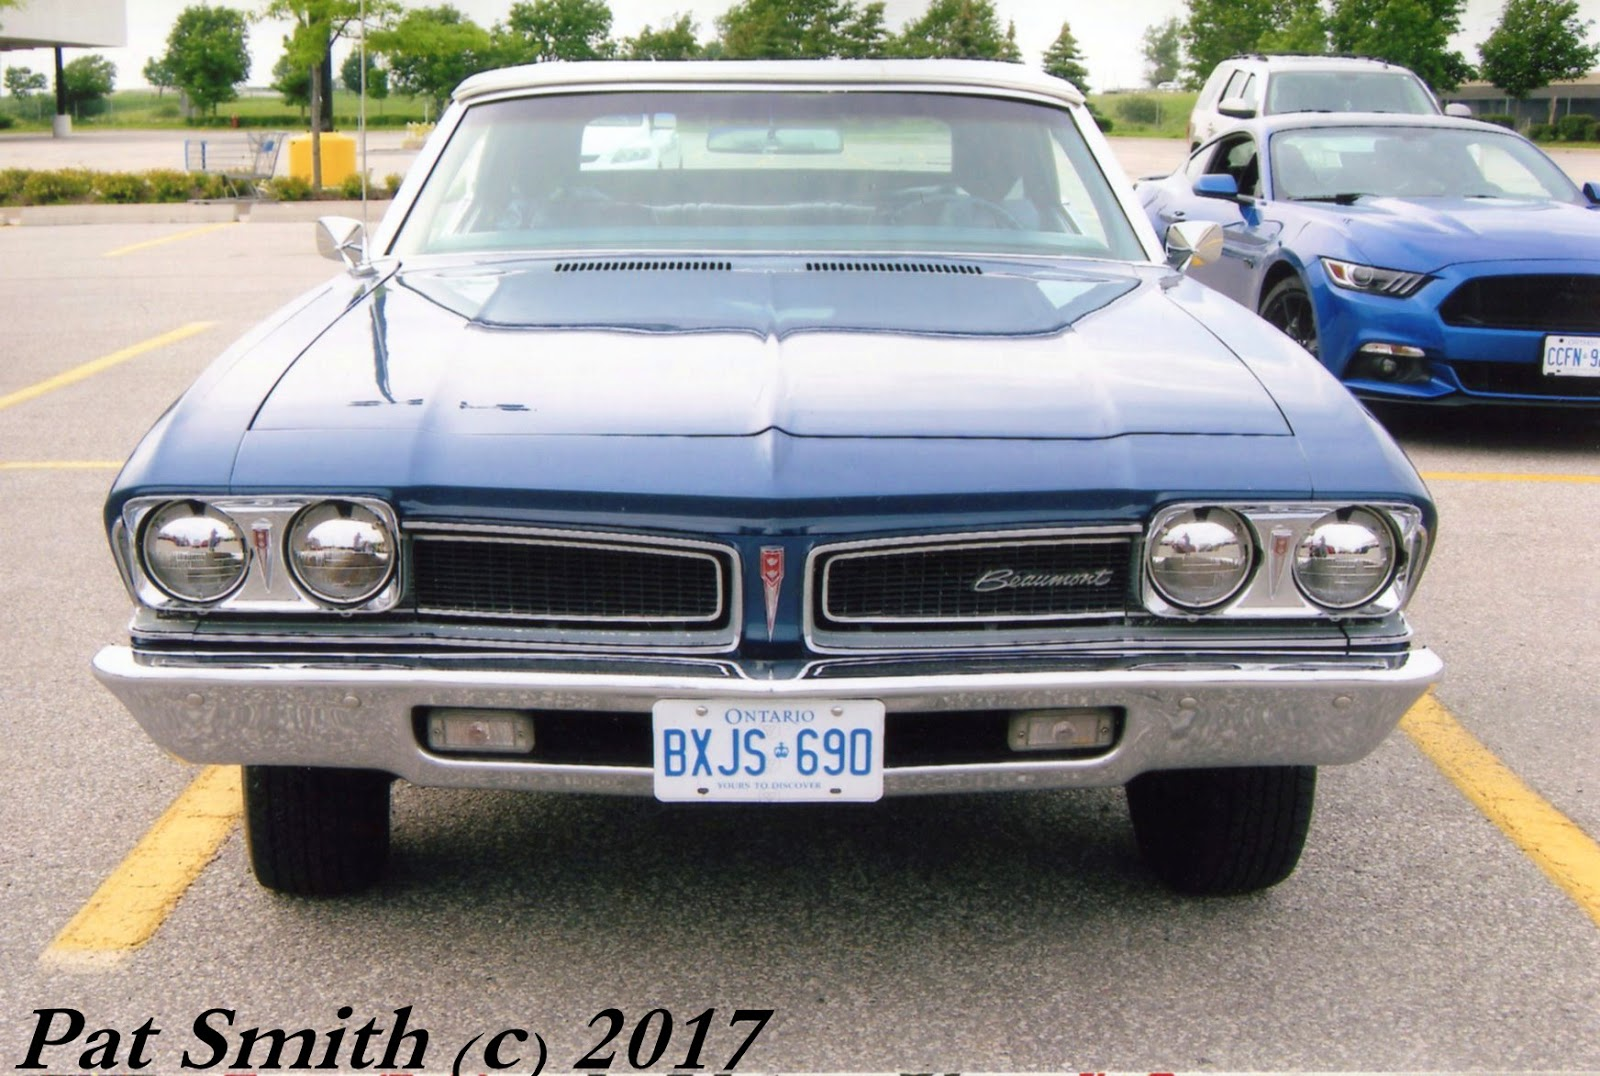 Canadian Classic: 1969 Beaumont Convertible | phscollectorcarworld